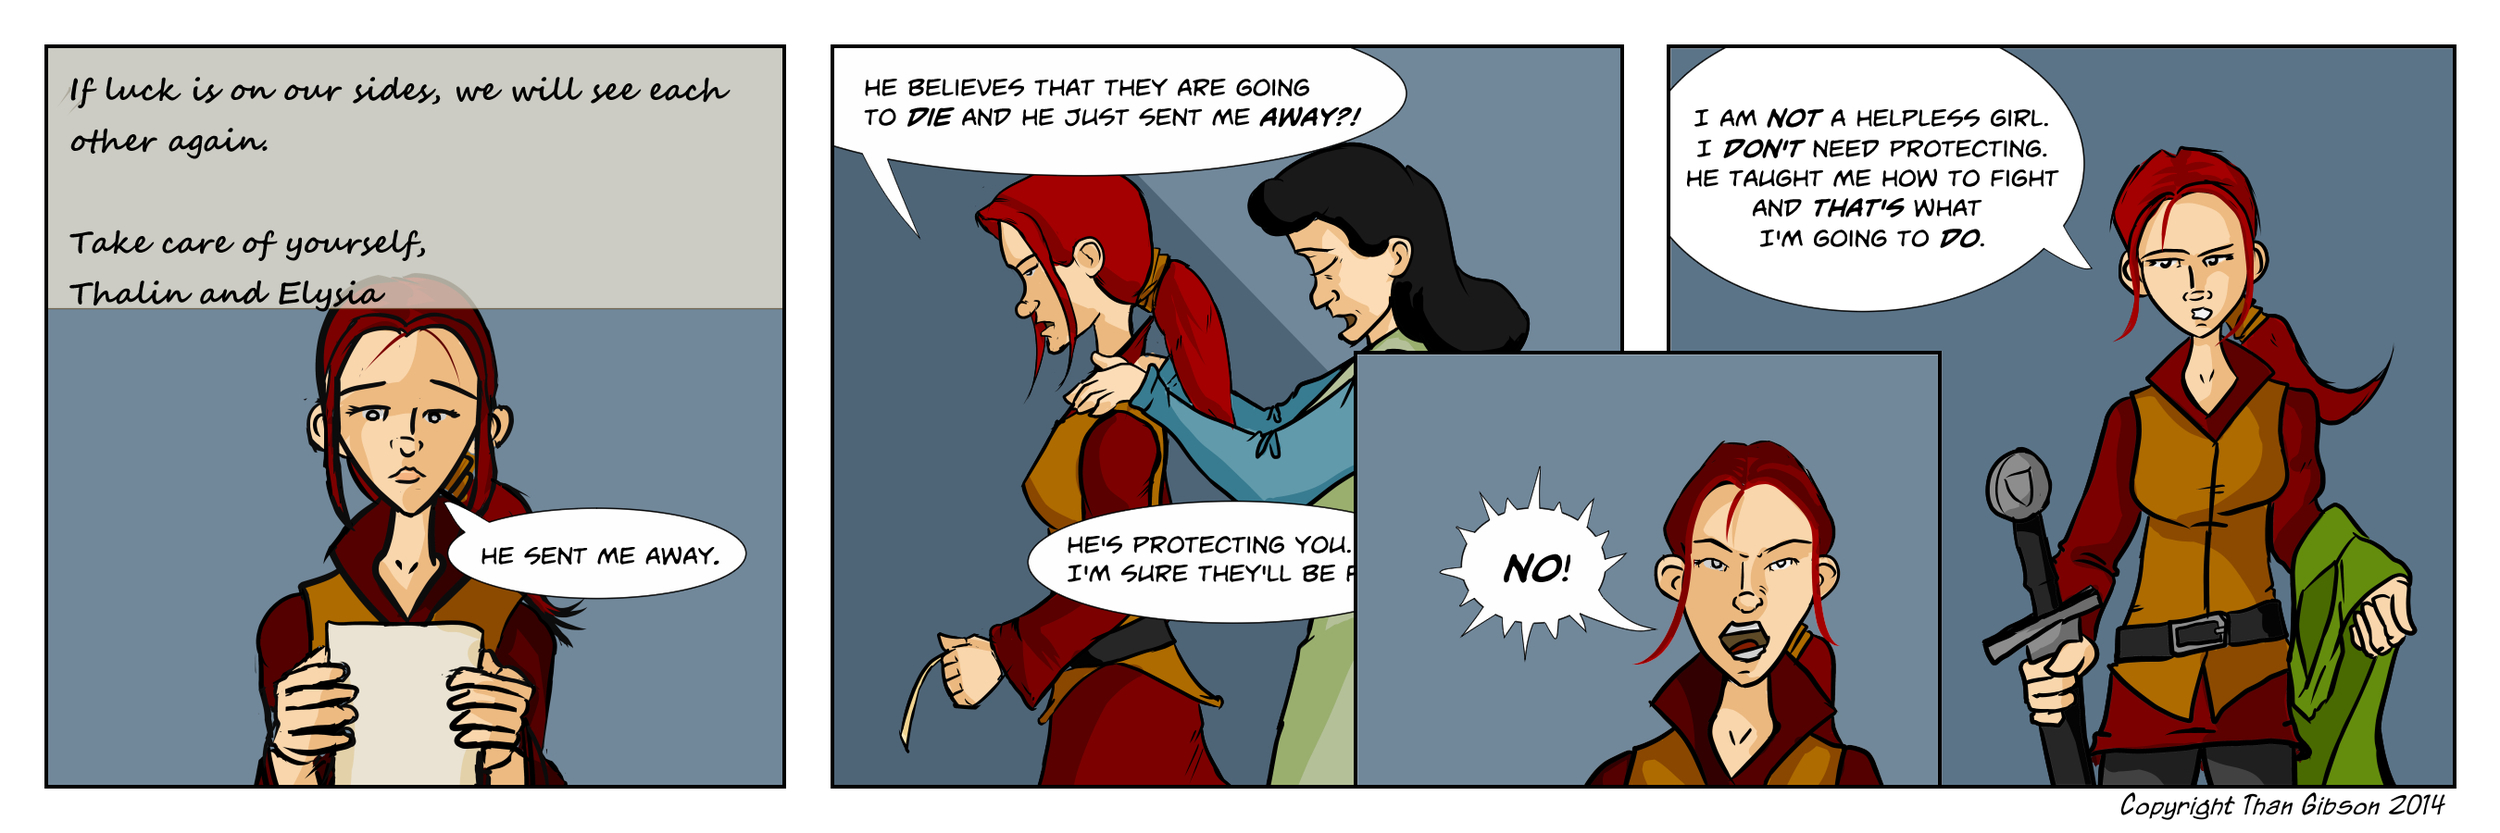 Strip 25 -Click the image for a larger view!